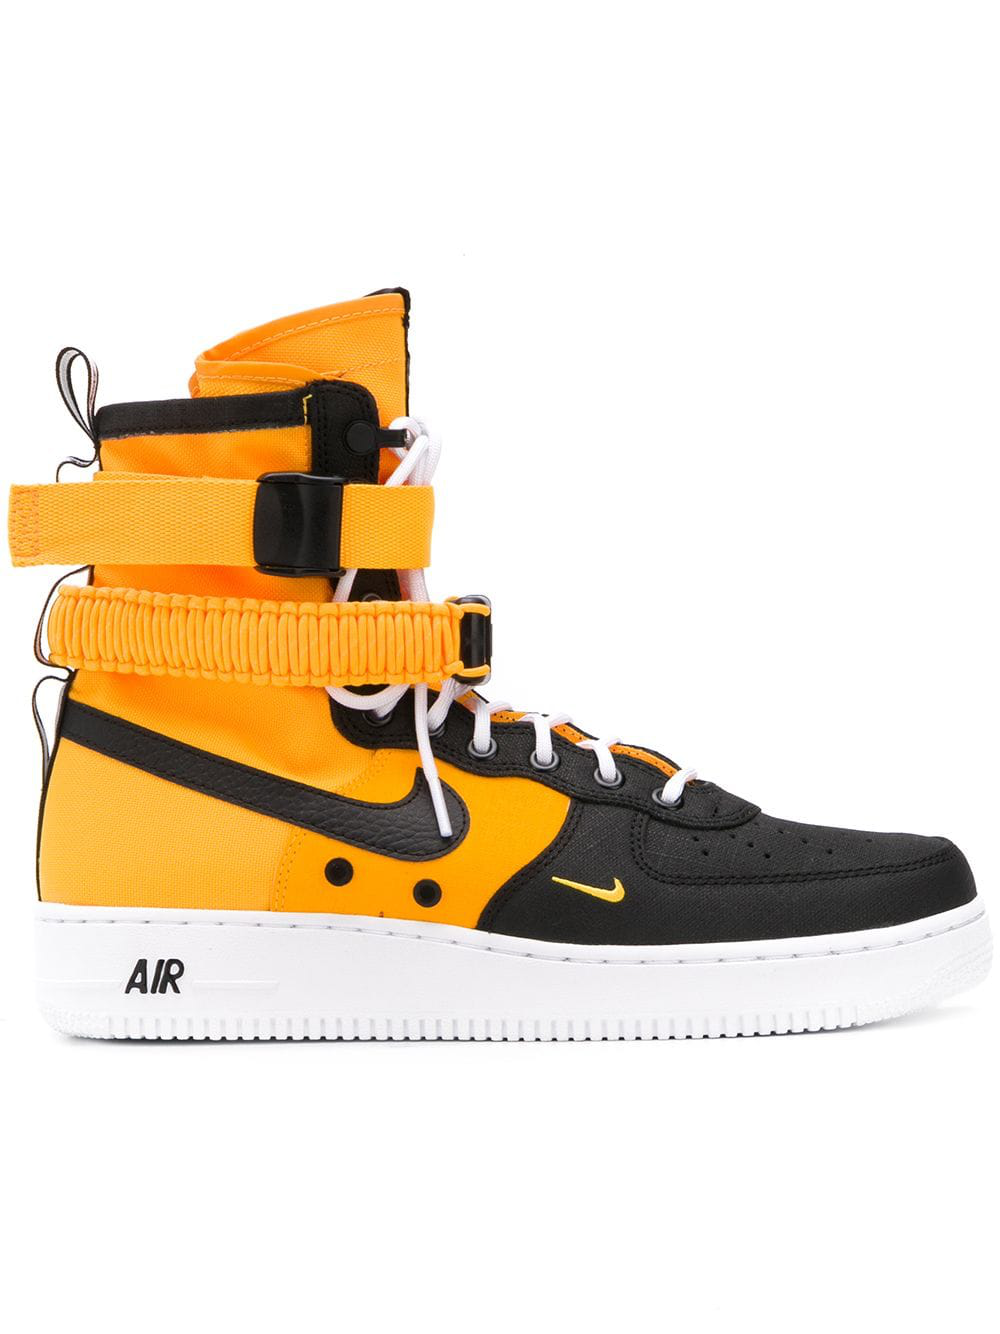 new styles 5dc32 e67bd Nike Sf Air Force 1 High Top Sneakers - Orange